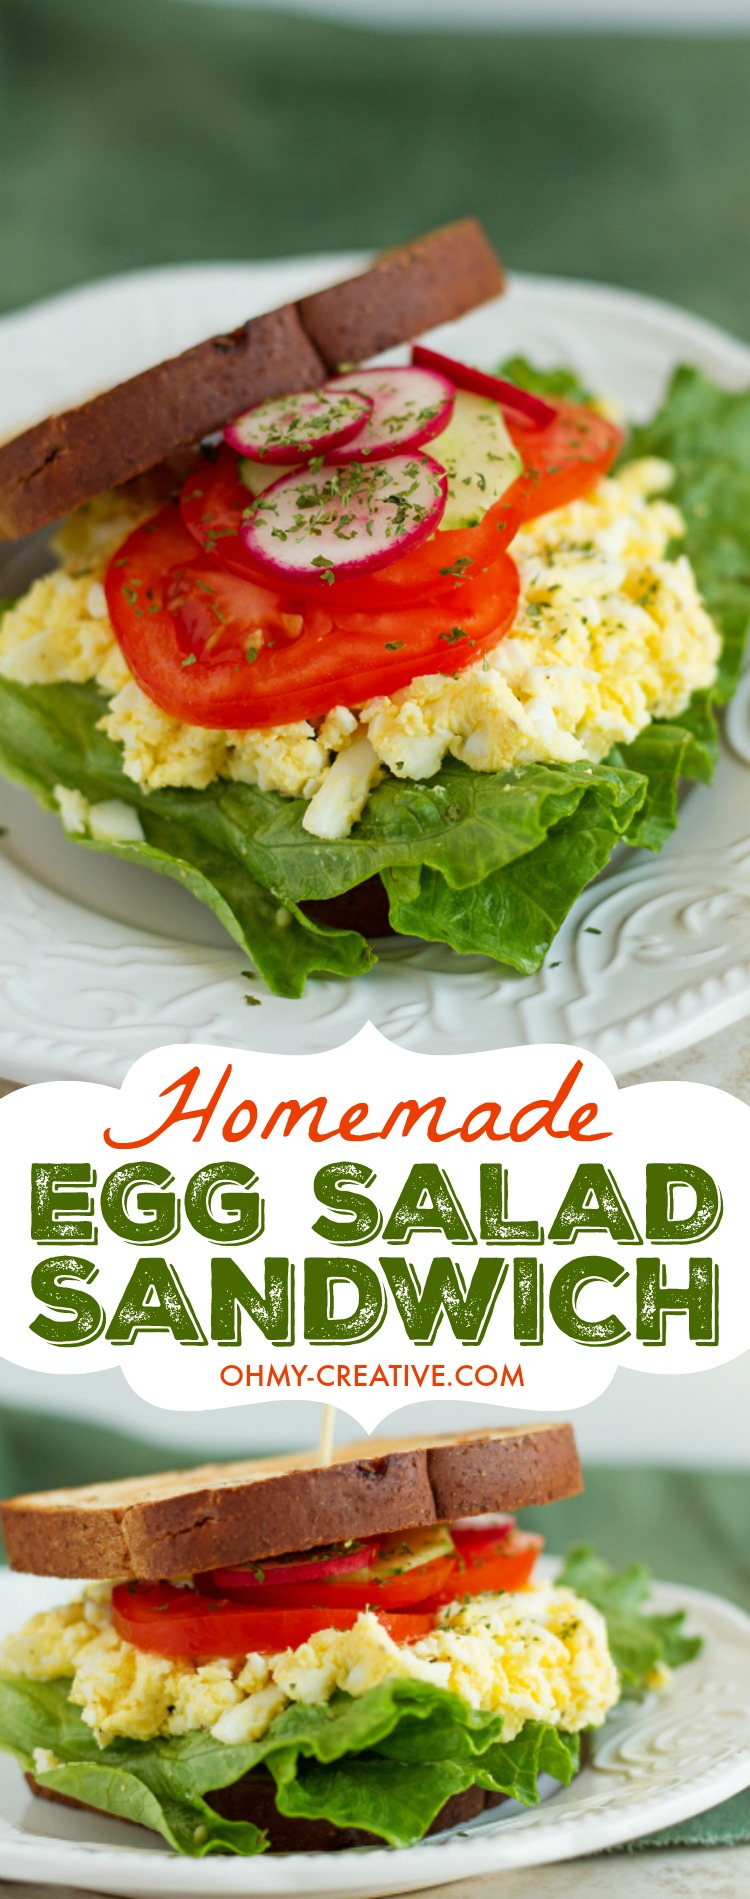 This Homemade Egg Salad Sandwich Recipe is a light and delicious egg sandwich. Top with your favorite veggies like cucumber, tomato and lettuce. A quick and delicious lunch. OHMY-CREATIVE.COM #eggsalad #eggsaladrecip #eggsaladlettuce #eggsaladsandwich